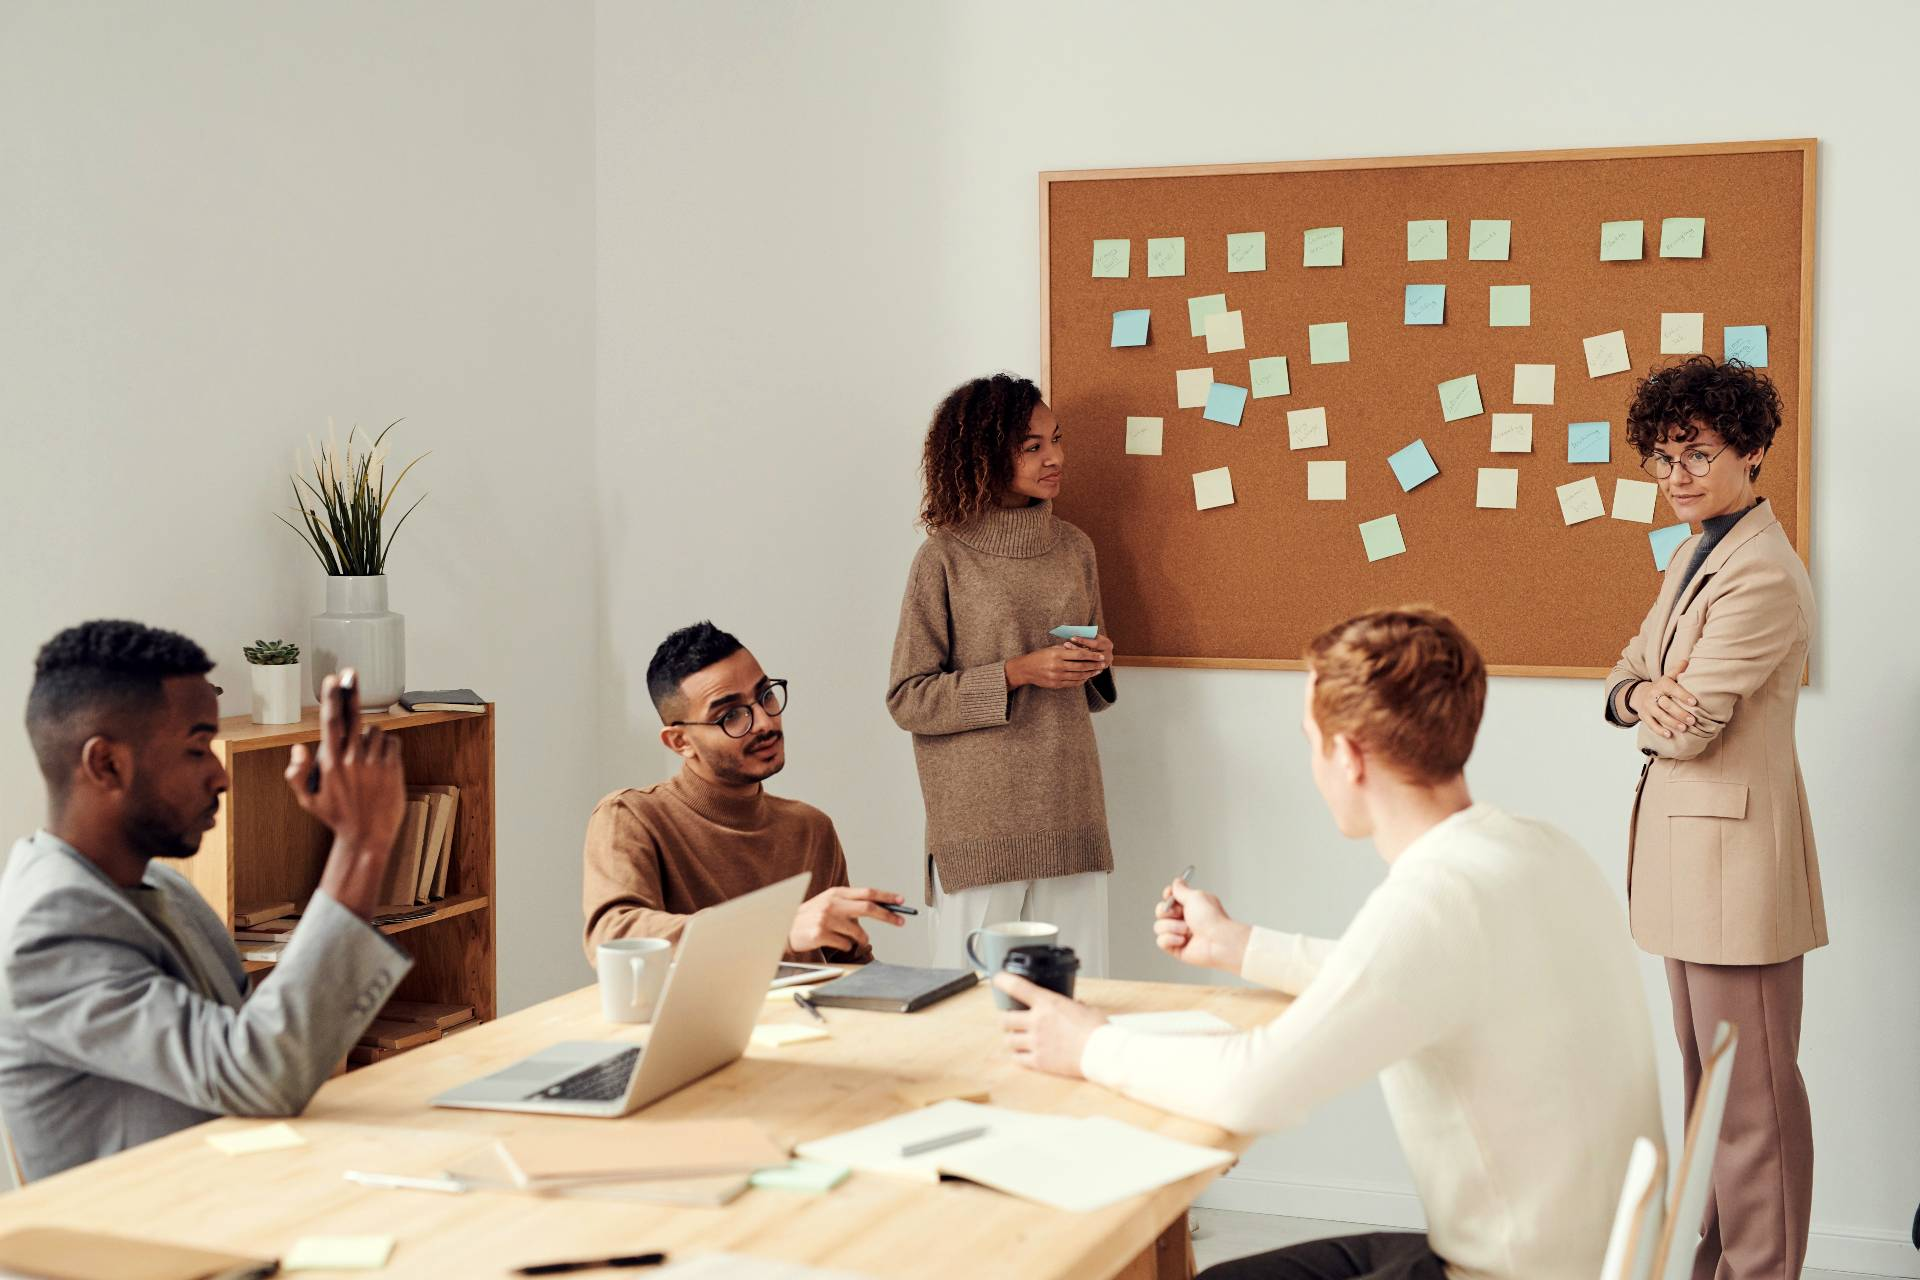 Employee development must be a top priority for every manager. It's a proven method for both encouraging staff and boosting productivity.